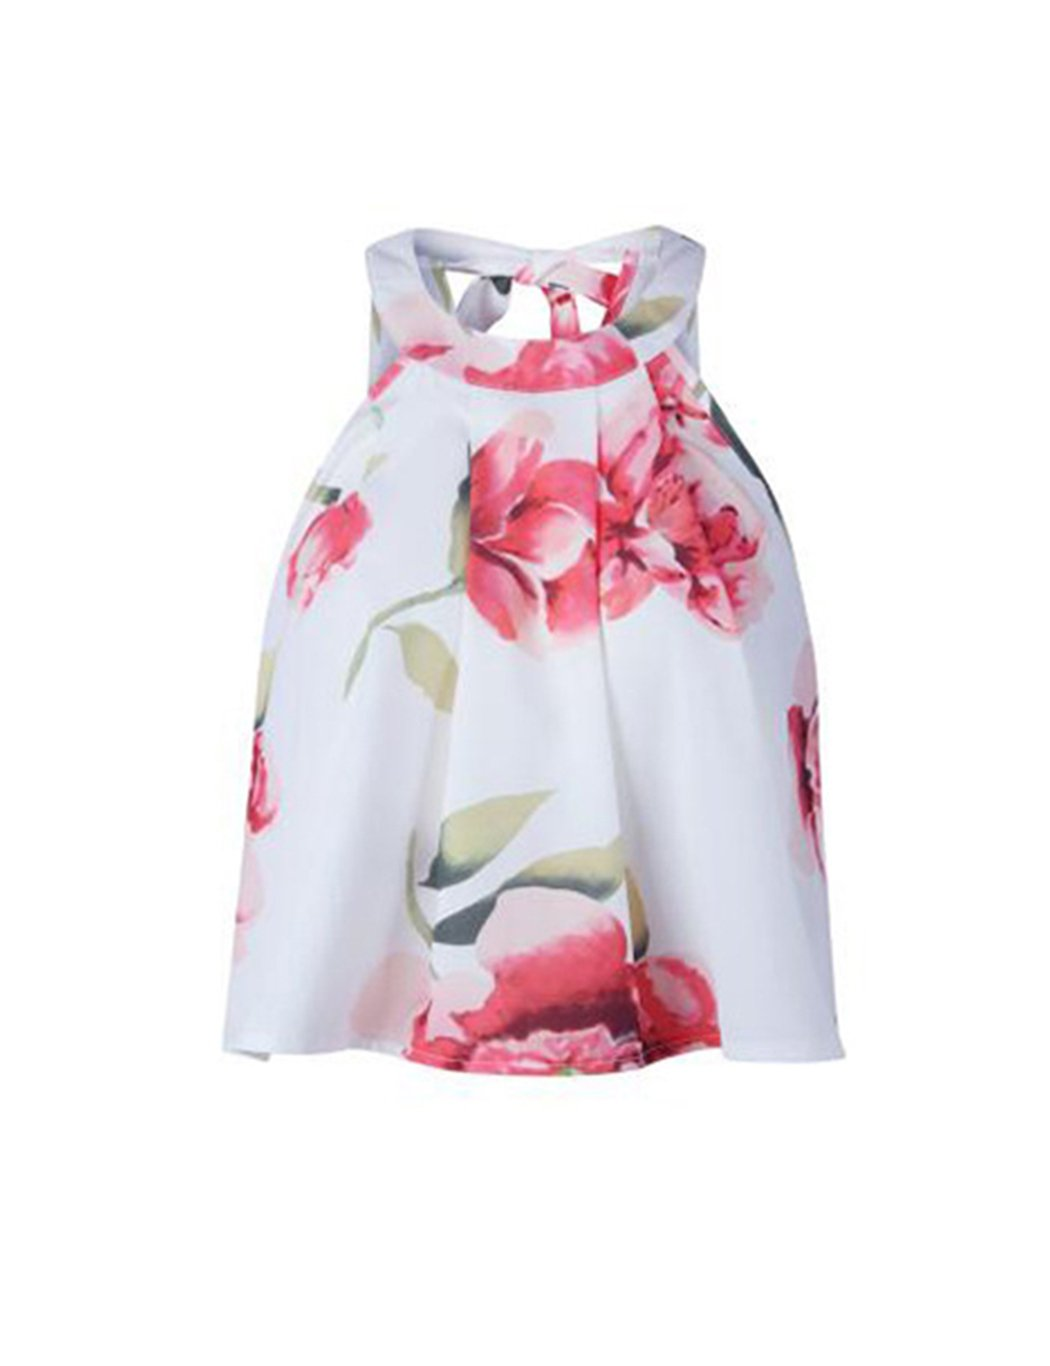 Women s Floral Printed Summer Dress Romper Boho Playsuit Jumpsuits Beach 2  Piece Outfits Top with Shorts 08818a82e